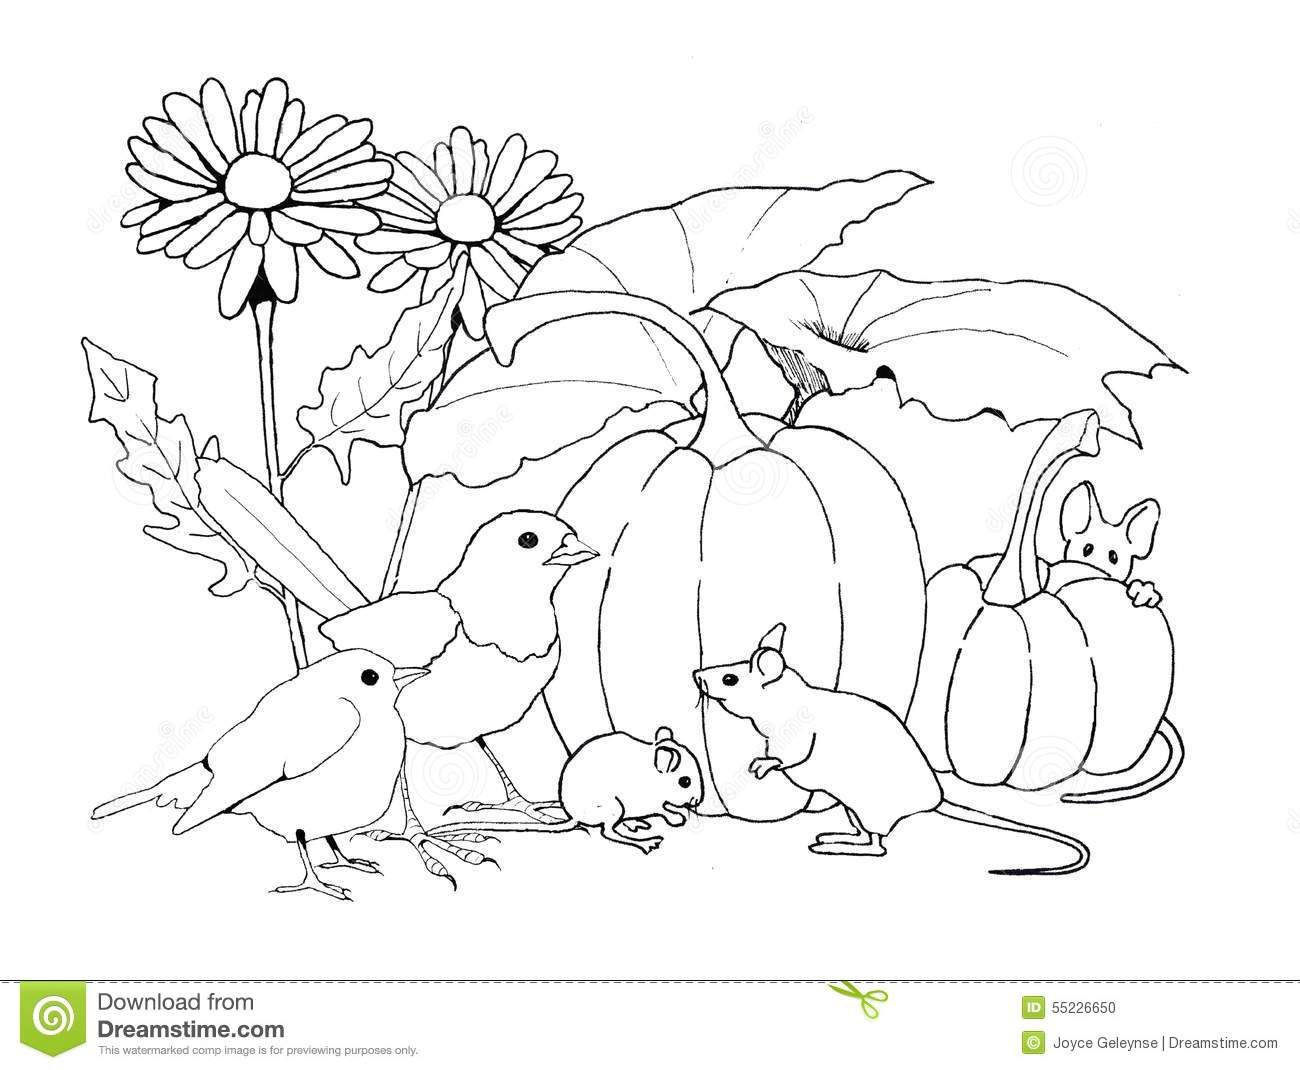 birds and mice with pumpkins and flowers coloring page download